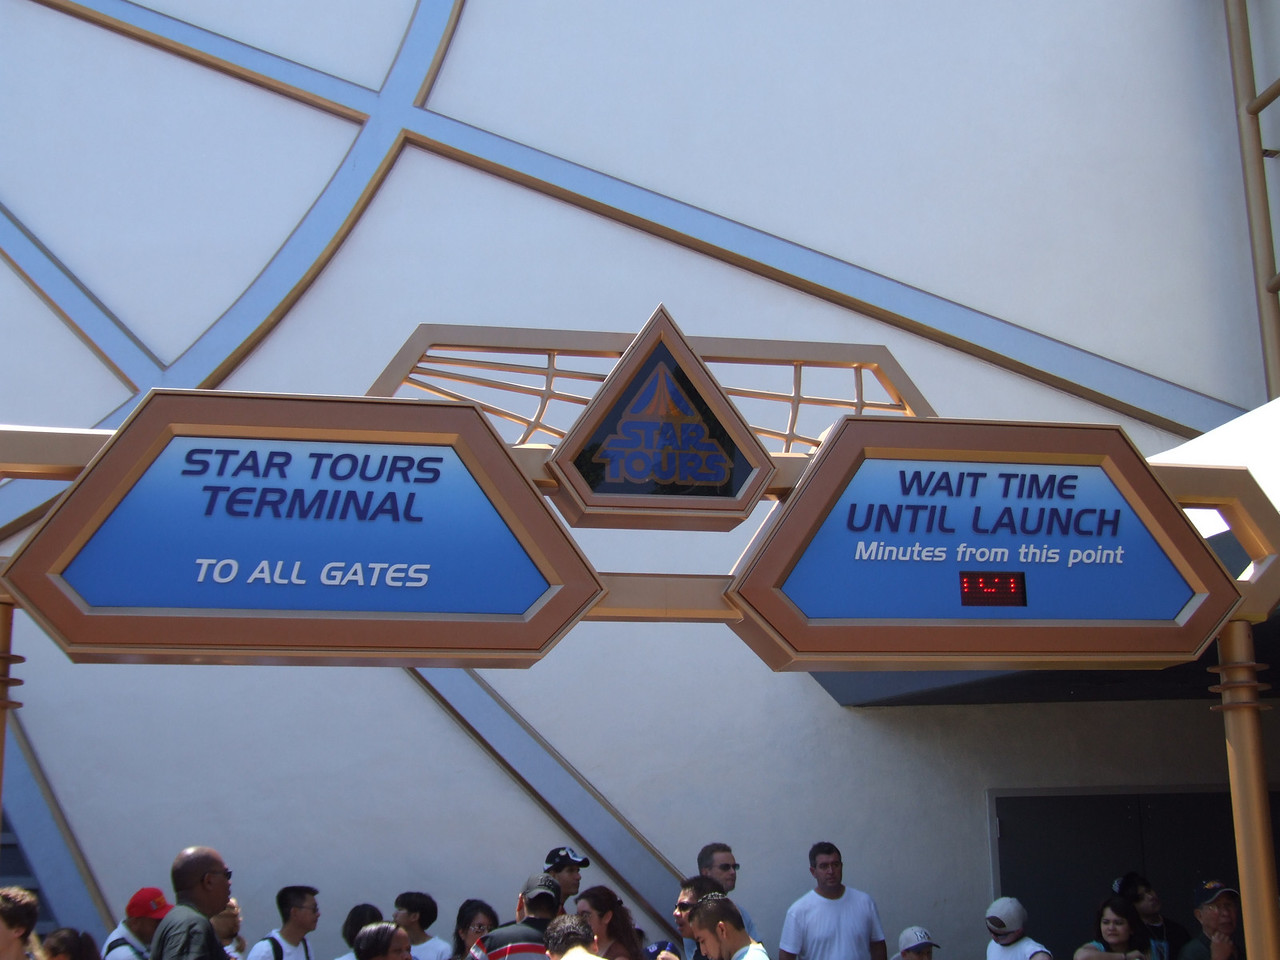 The Star Tours sign has been updated